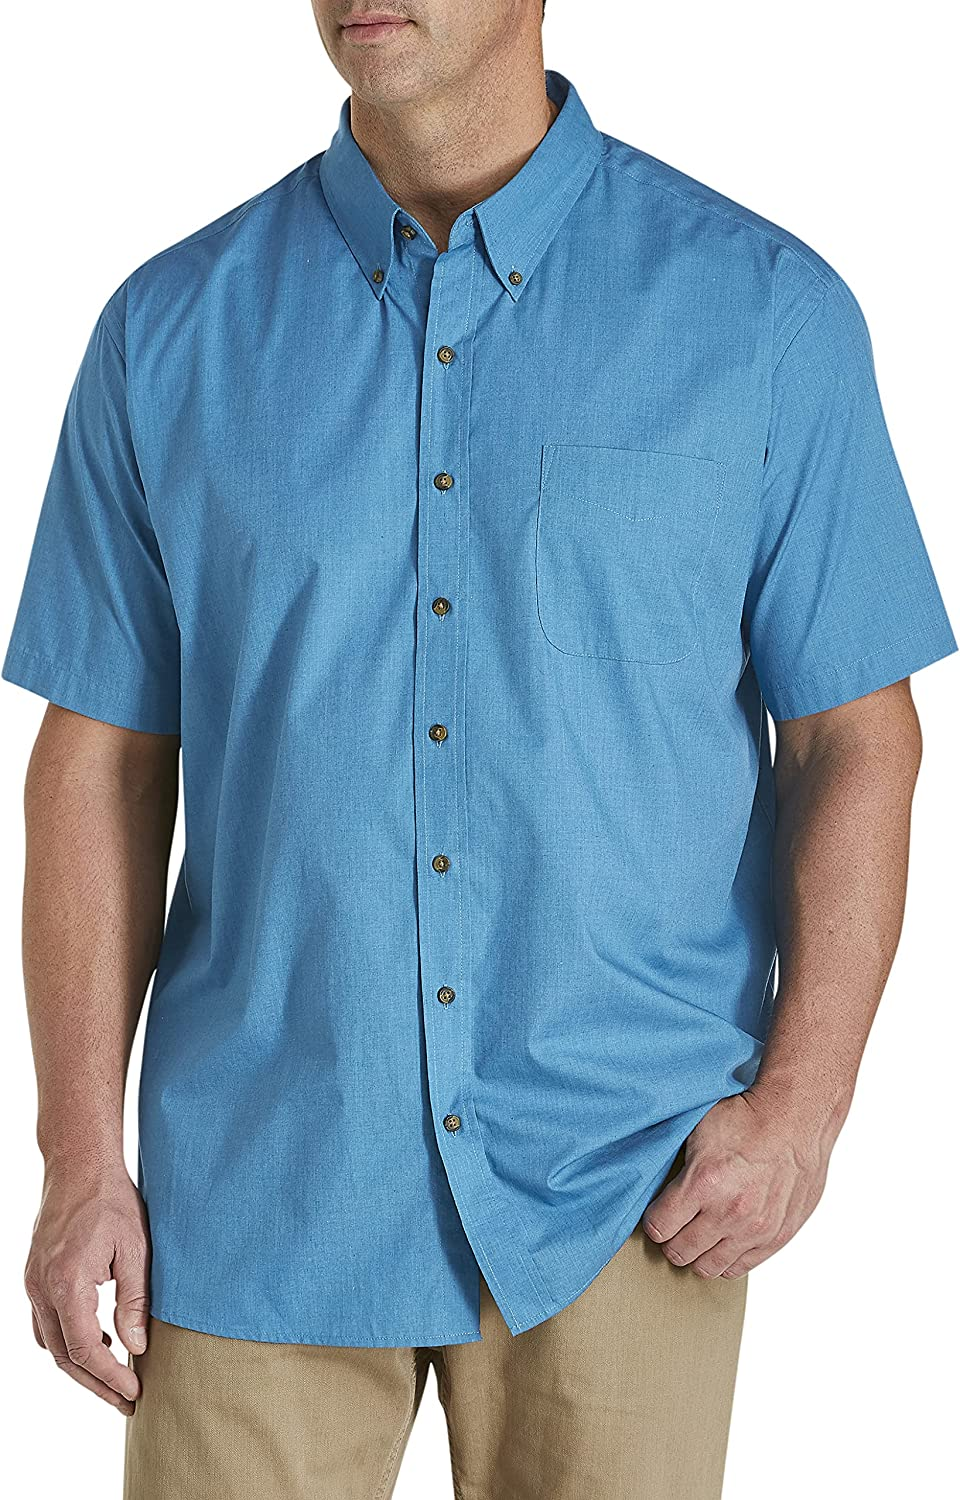 Harbor Bay by Excellence DXL Big and Easy-Care Shirt Solid Tall Tampa Mall Sport